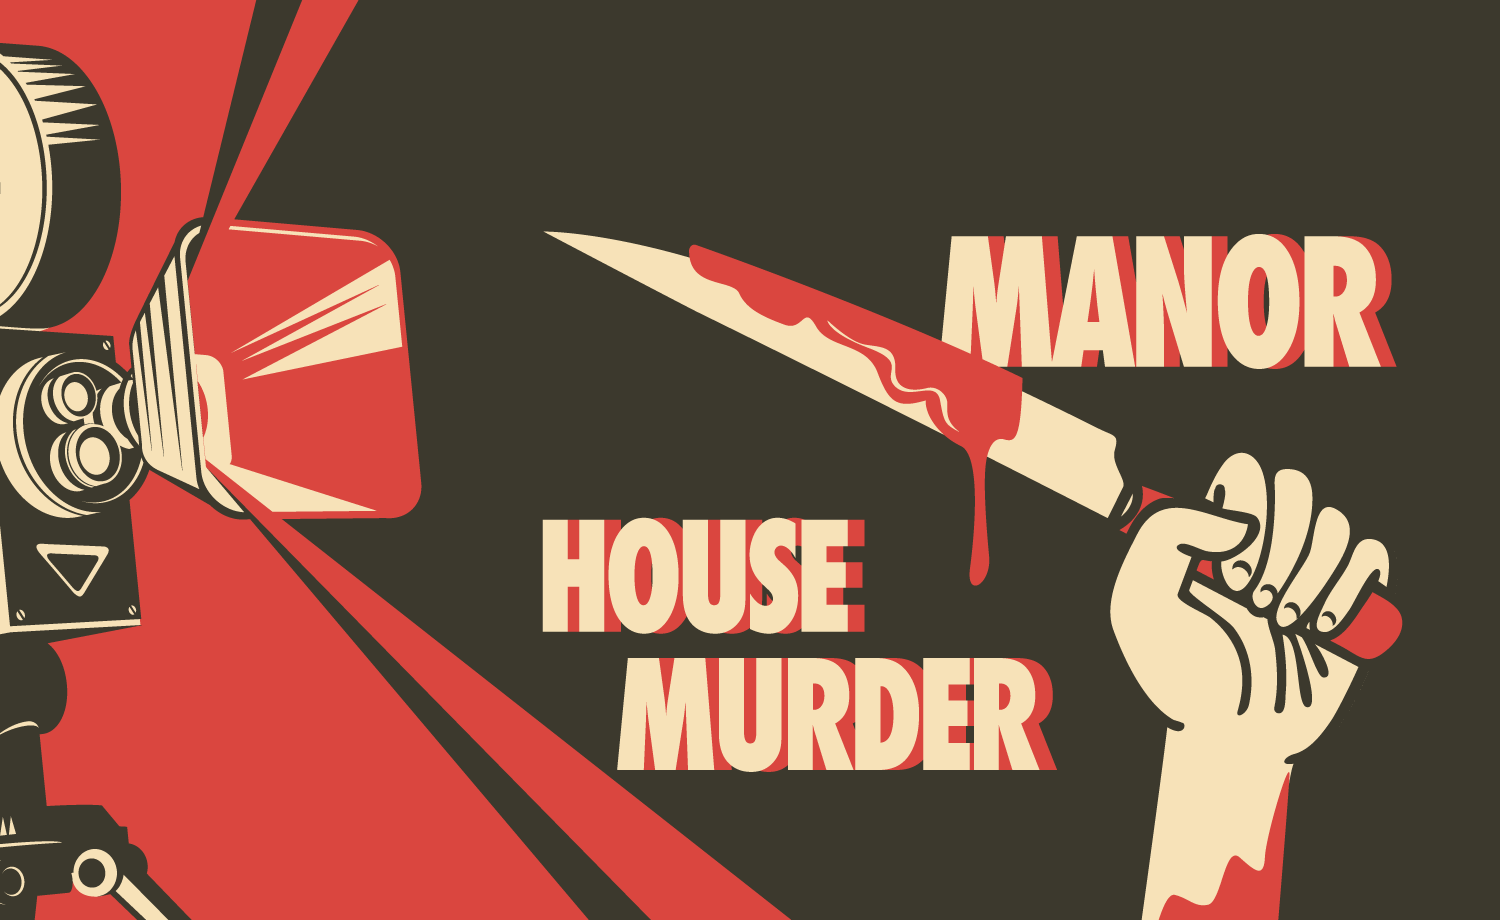 manor-house-murder